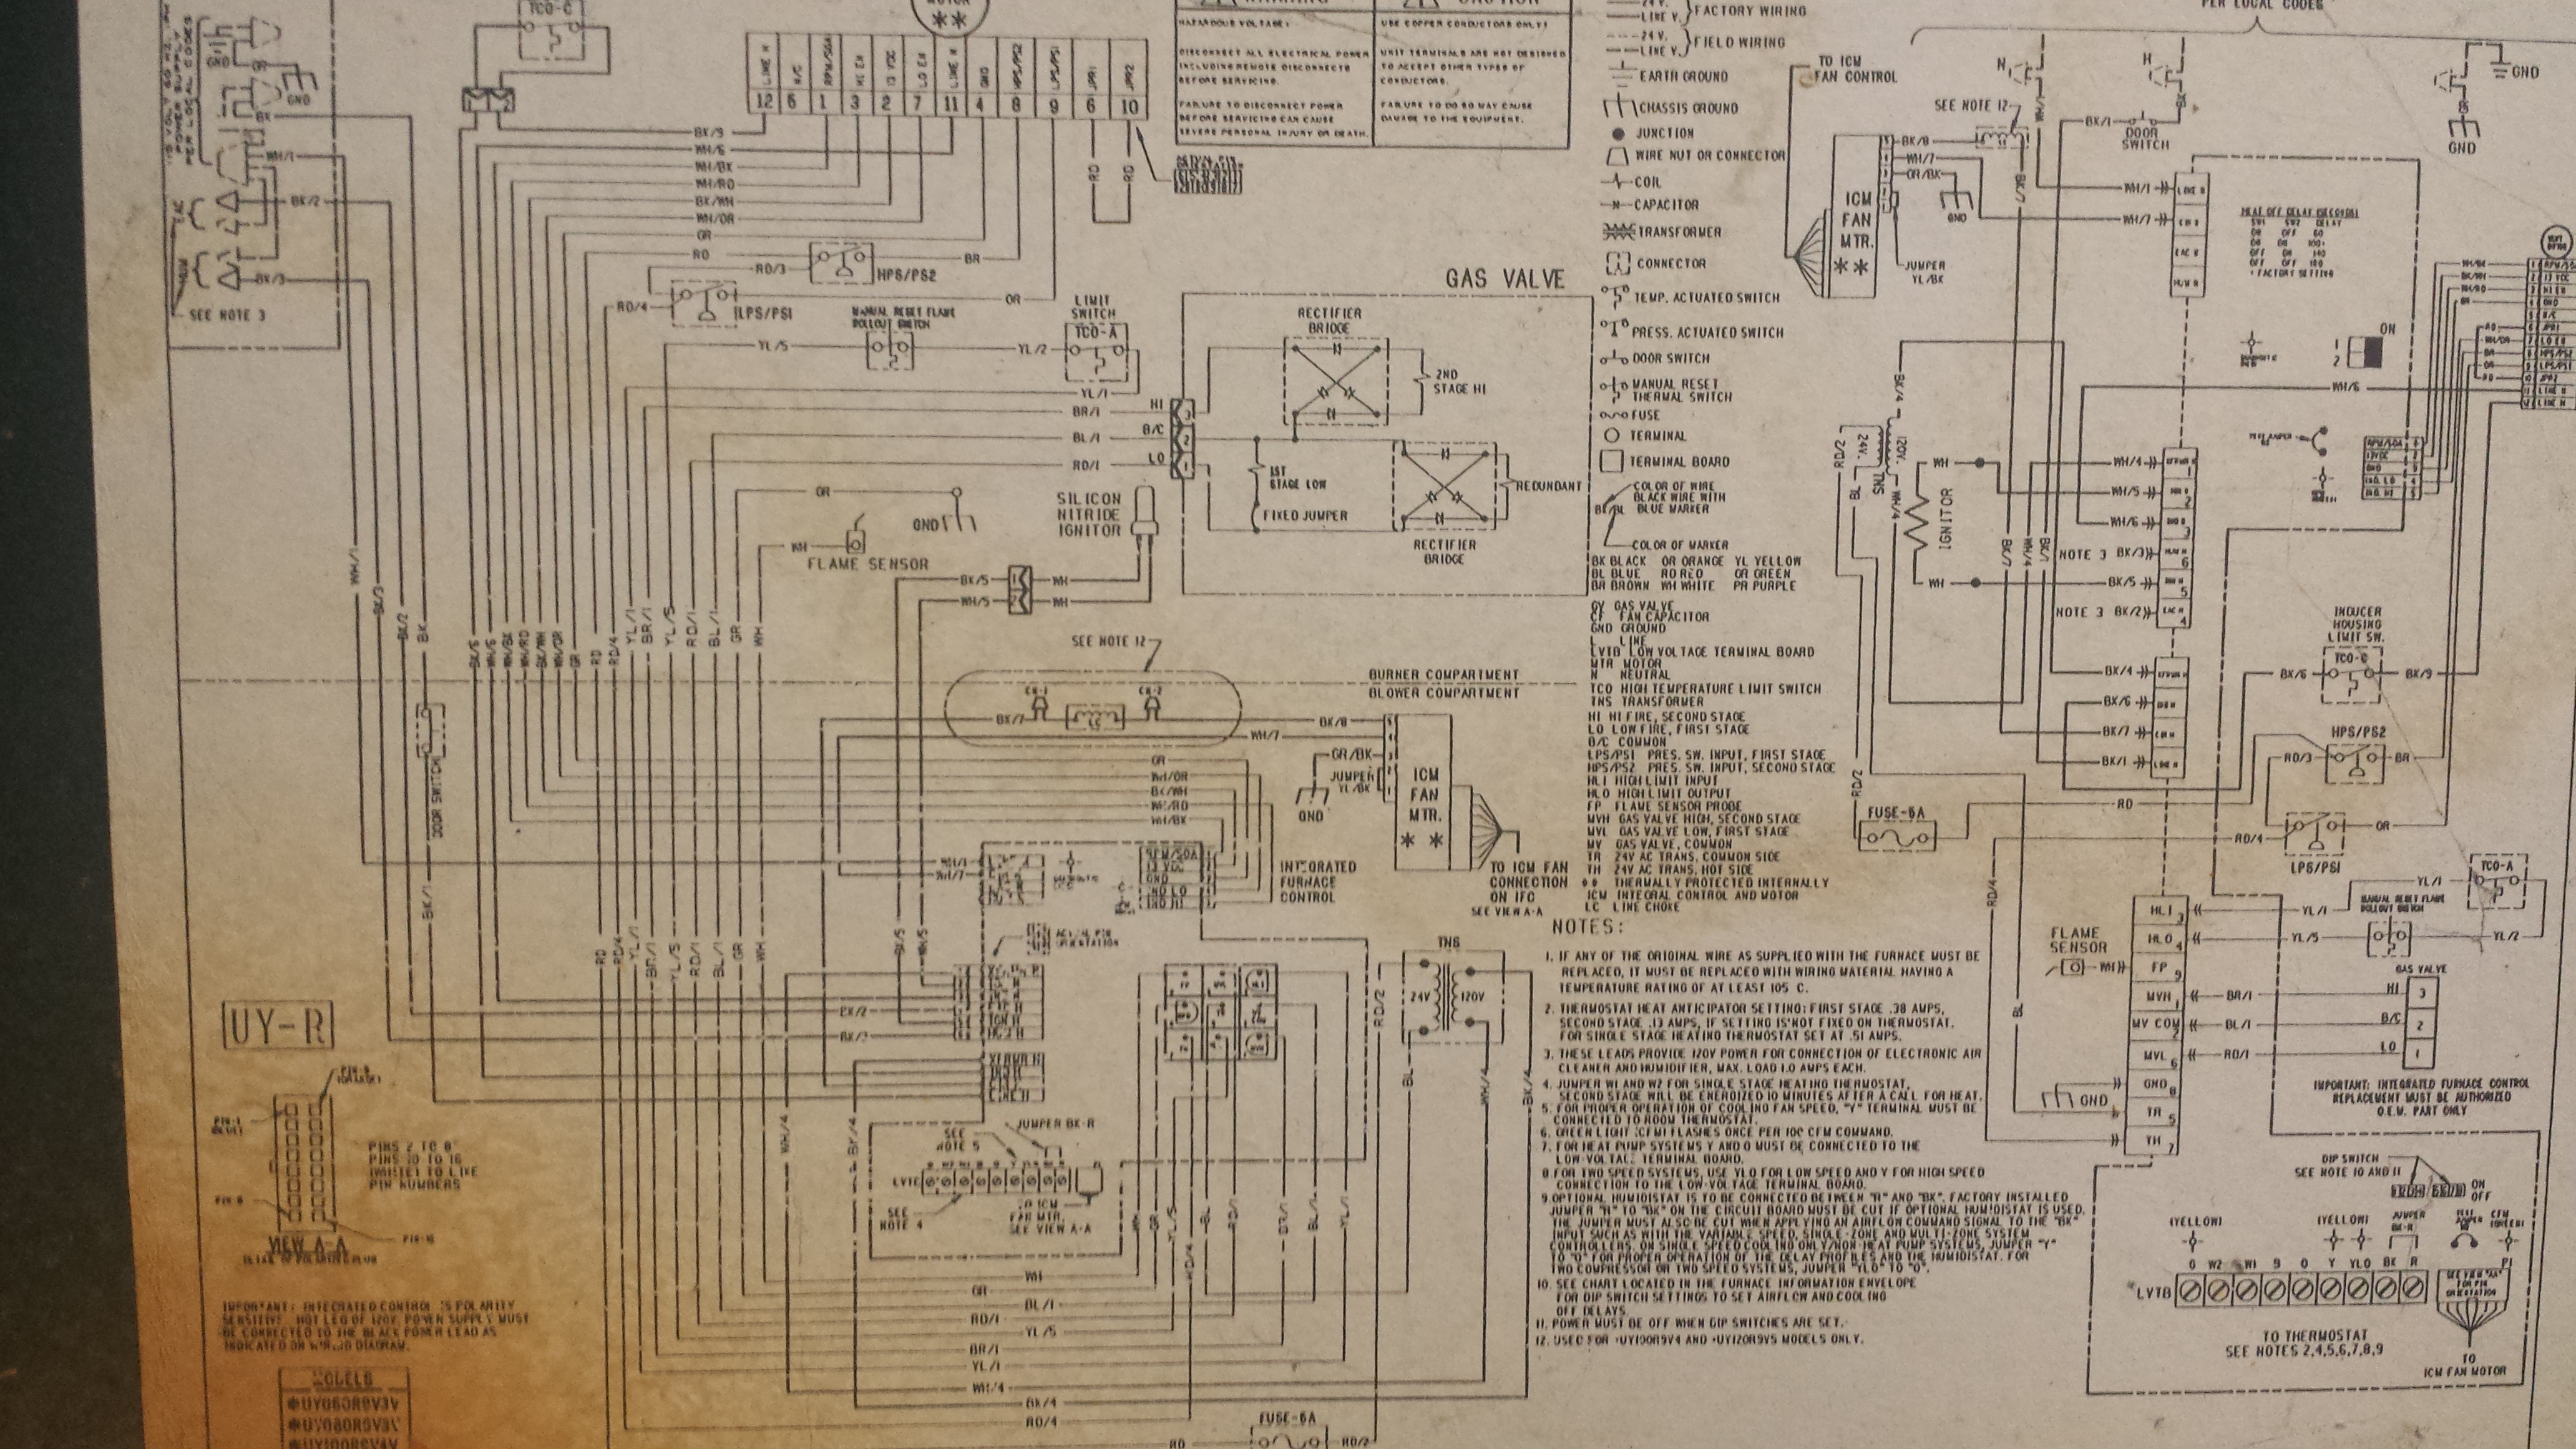 I Am Wiring Xv90 With Honeywell Wifi Termostat And Missing C Trane Diagram 2014 07 26 233426 20140726 1833391